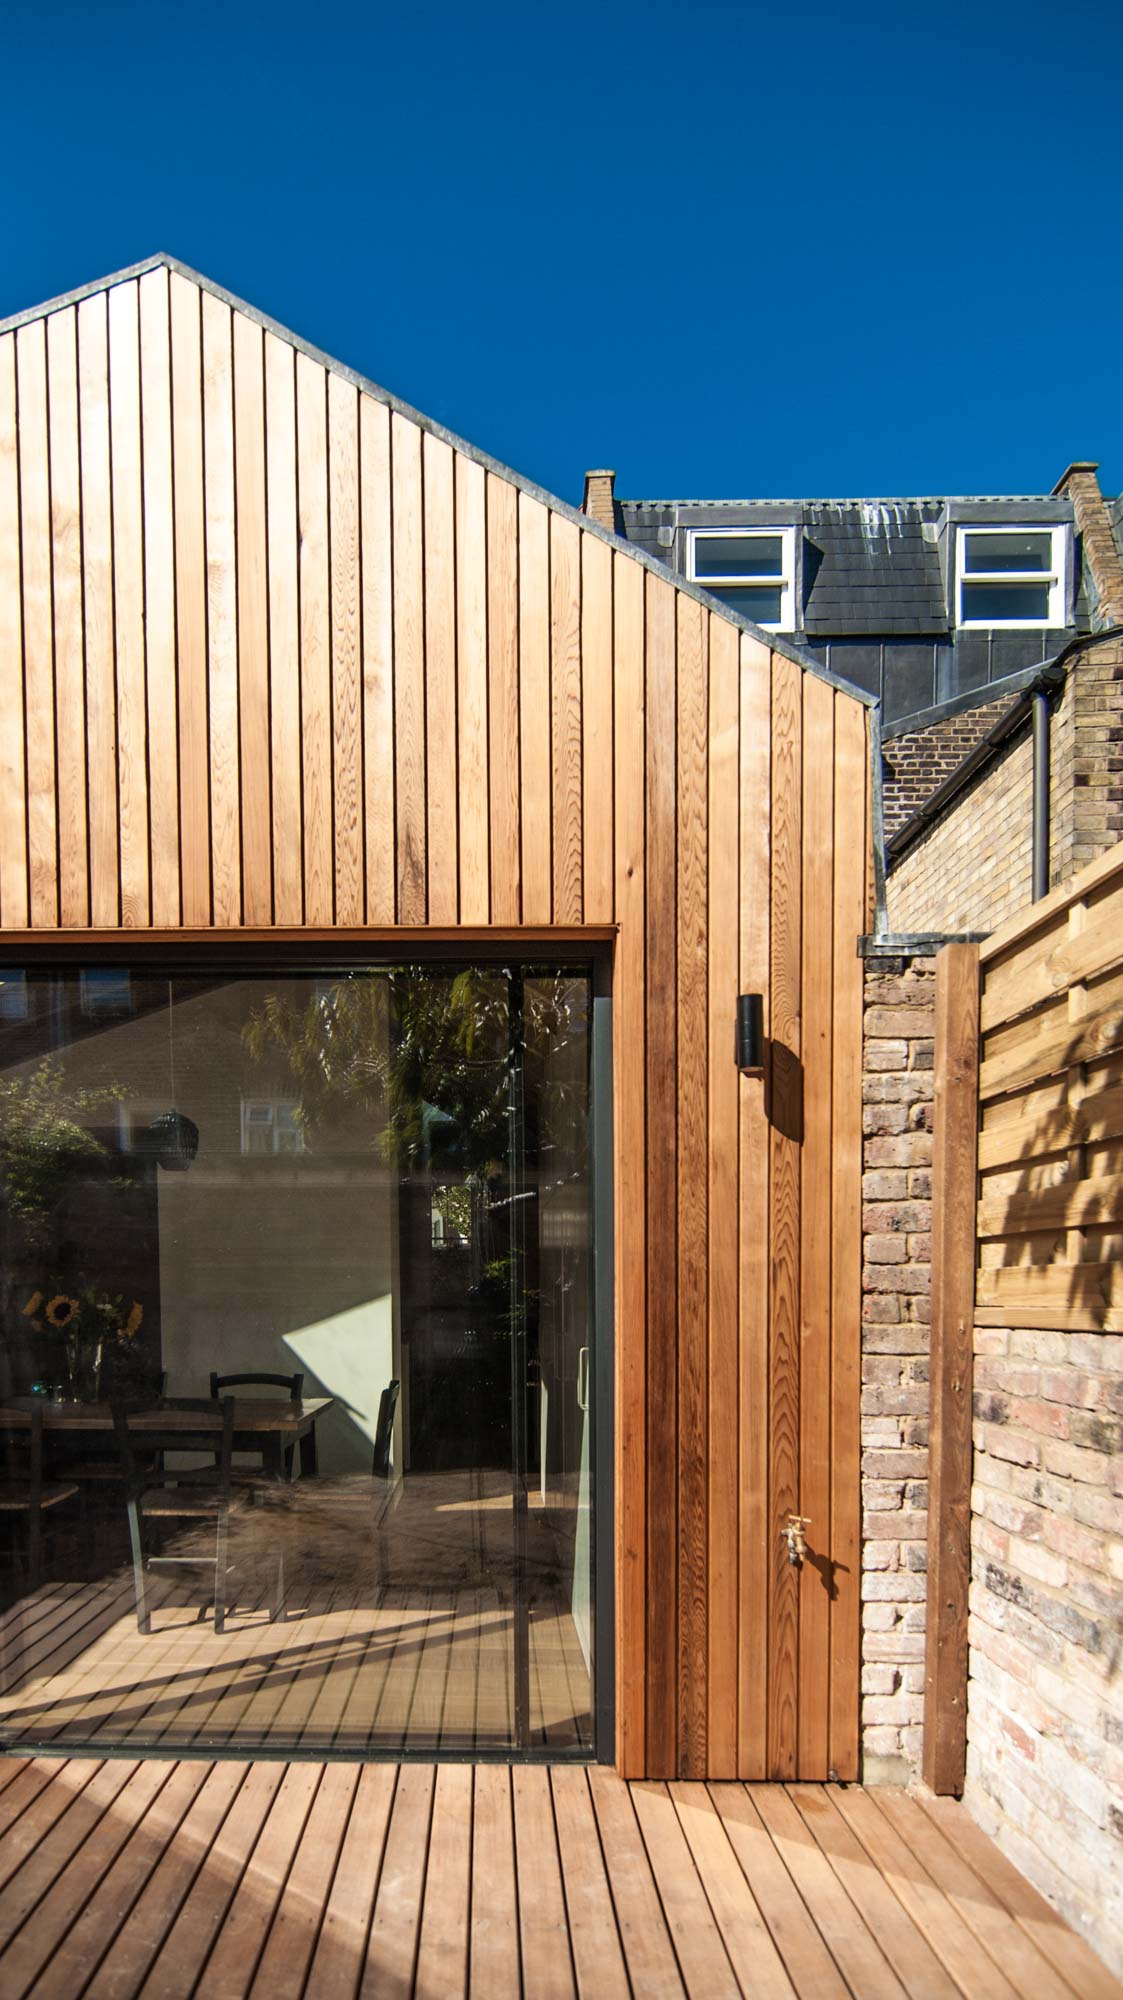 Exterior view of a timber cladding rear extension including large sliding doors.